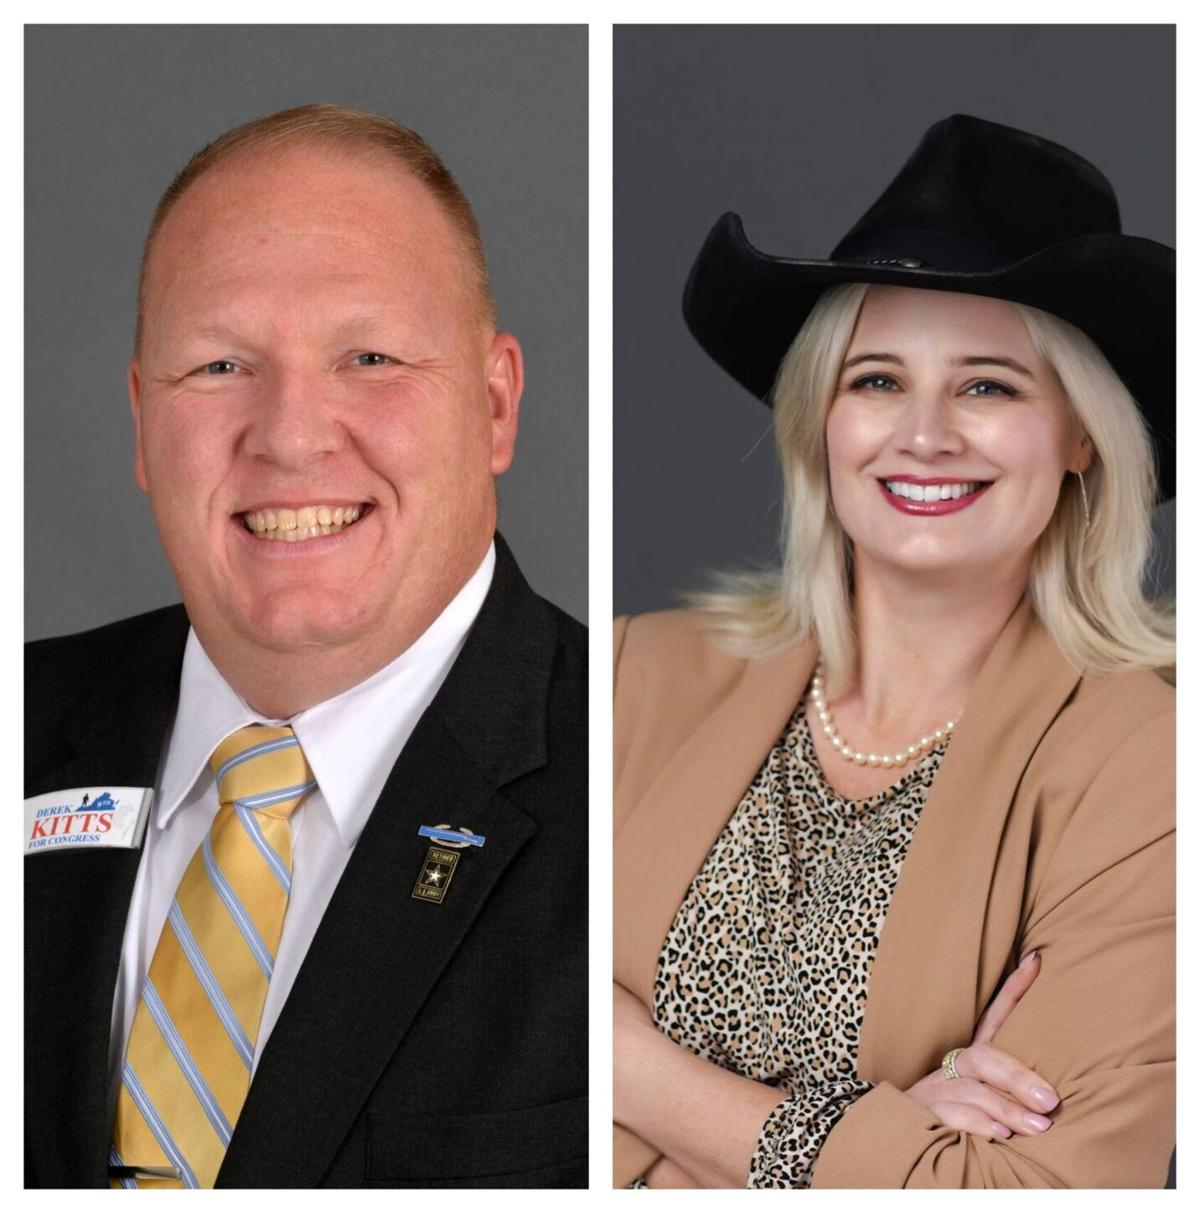 7th District candidates